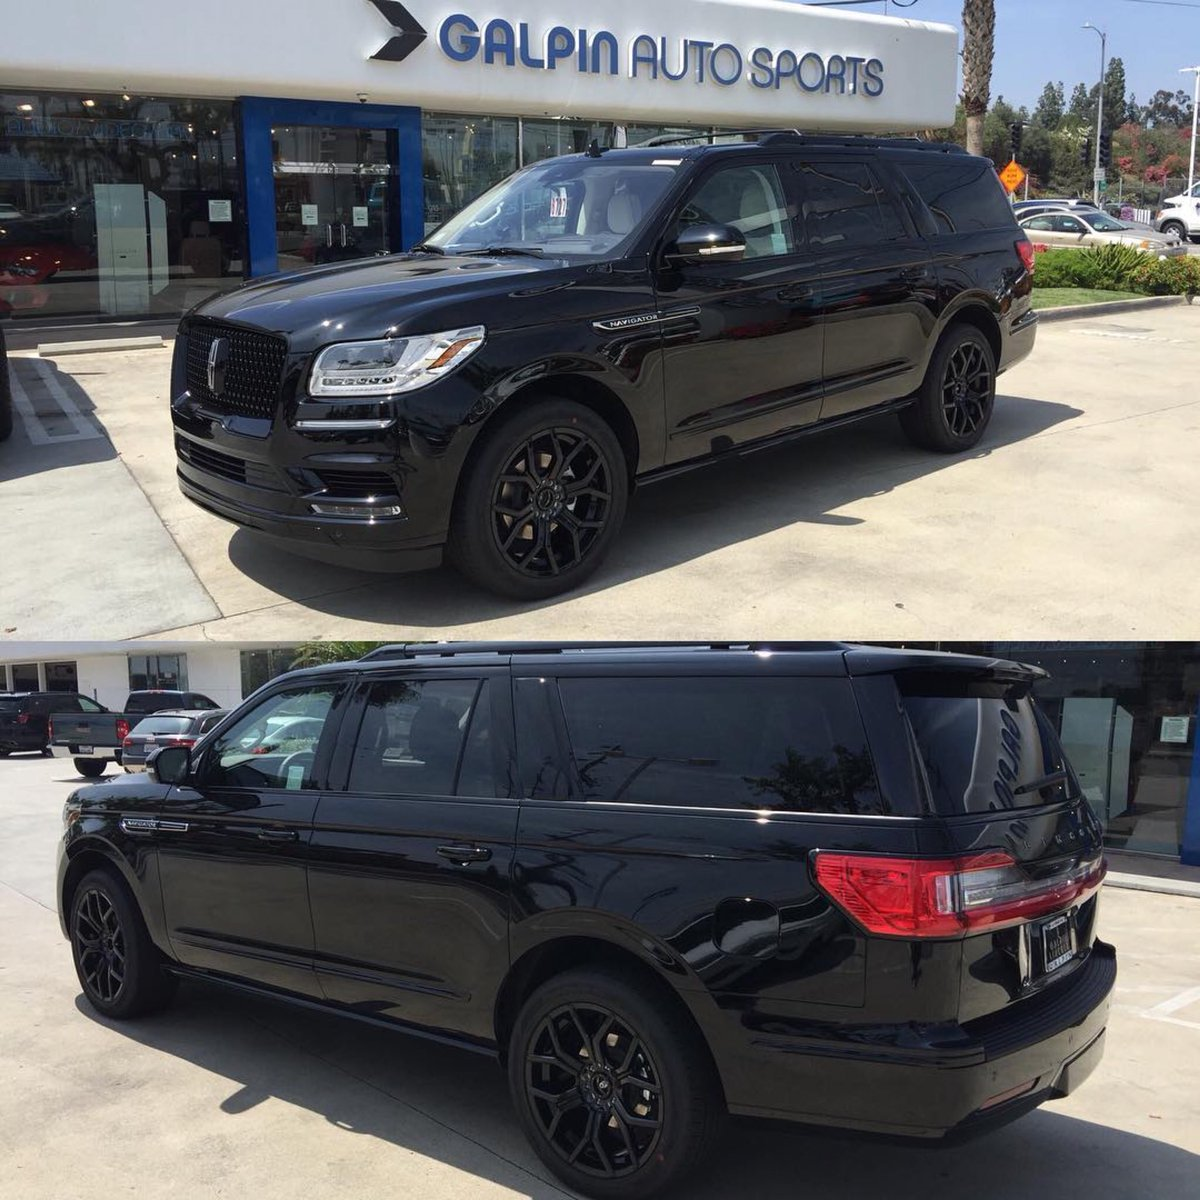 "Galpin Auto Sports On Twitter: ""2018 Lincoln Navigator"